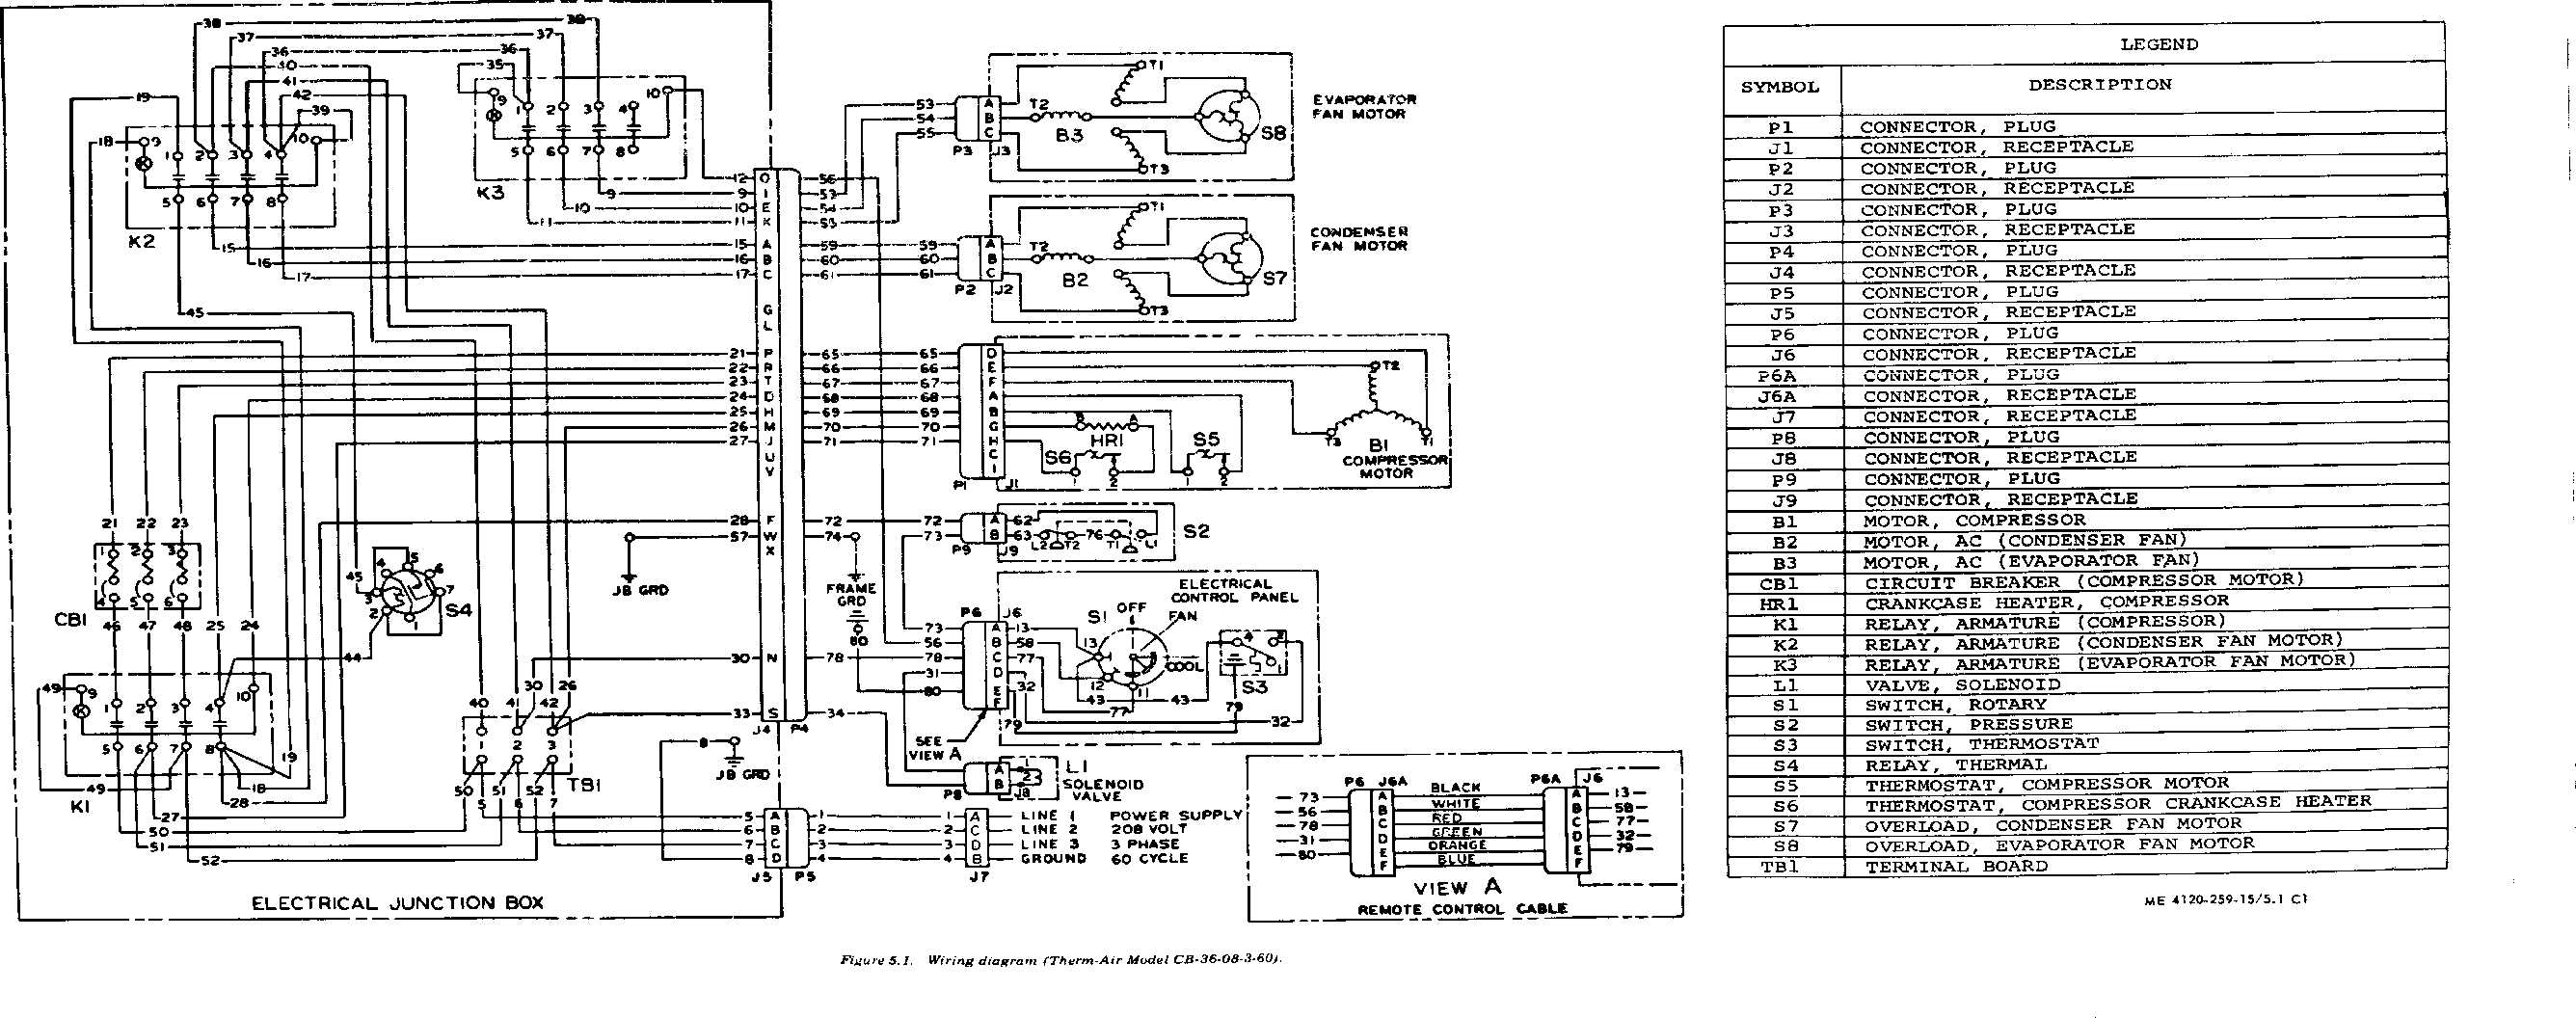 Trane Wiring Diagrams - Wiring Diagram Rows on trane hvac software, trane hvac service, amana hvac wiring diagrams, trane xr80 diagram, bryant hvac wiring diagrams, understanding hvac wiring diagrams, mcquay hvac wiring diagrams, trane rooftop ac wiring diagrams, hvac electrical wiring diagrams, hvac controls diagrams, trane condenser wiring-diagram, reading hvac wiring diagrams, trane furnace wiring, goodman hvac wiring diagrams, bard hvac wiring diagrams, york hvac wiring diagrams, icp hvac wiring diagrams, carrier hvac wiring diagrams, trane wiring diagrams model, trane air conditioner schematic,